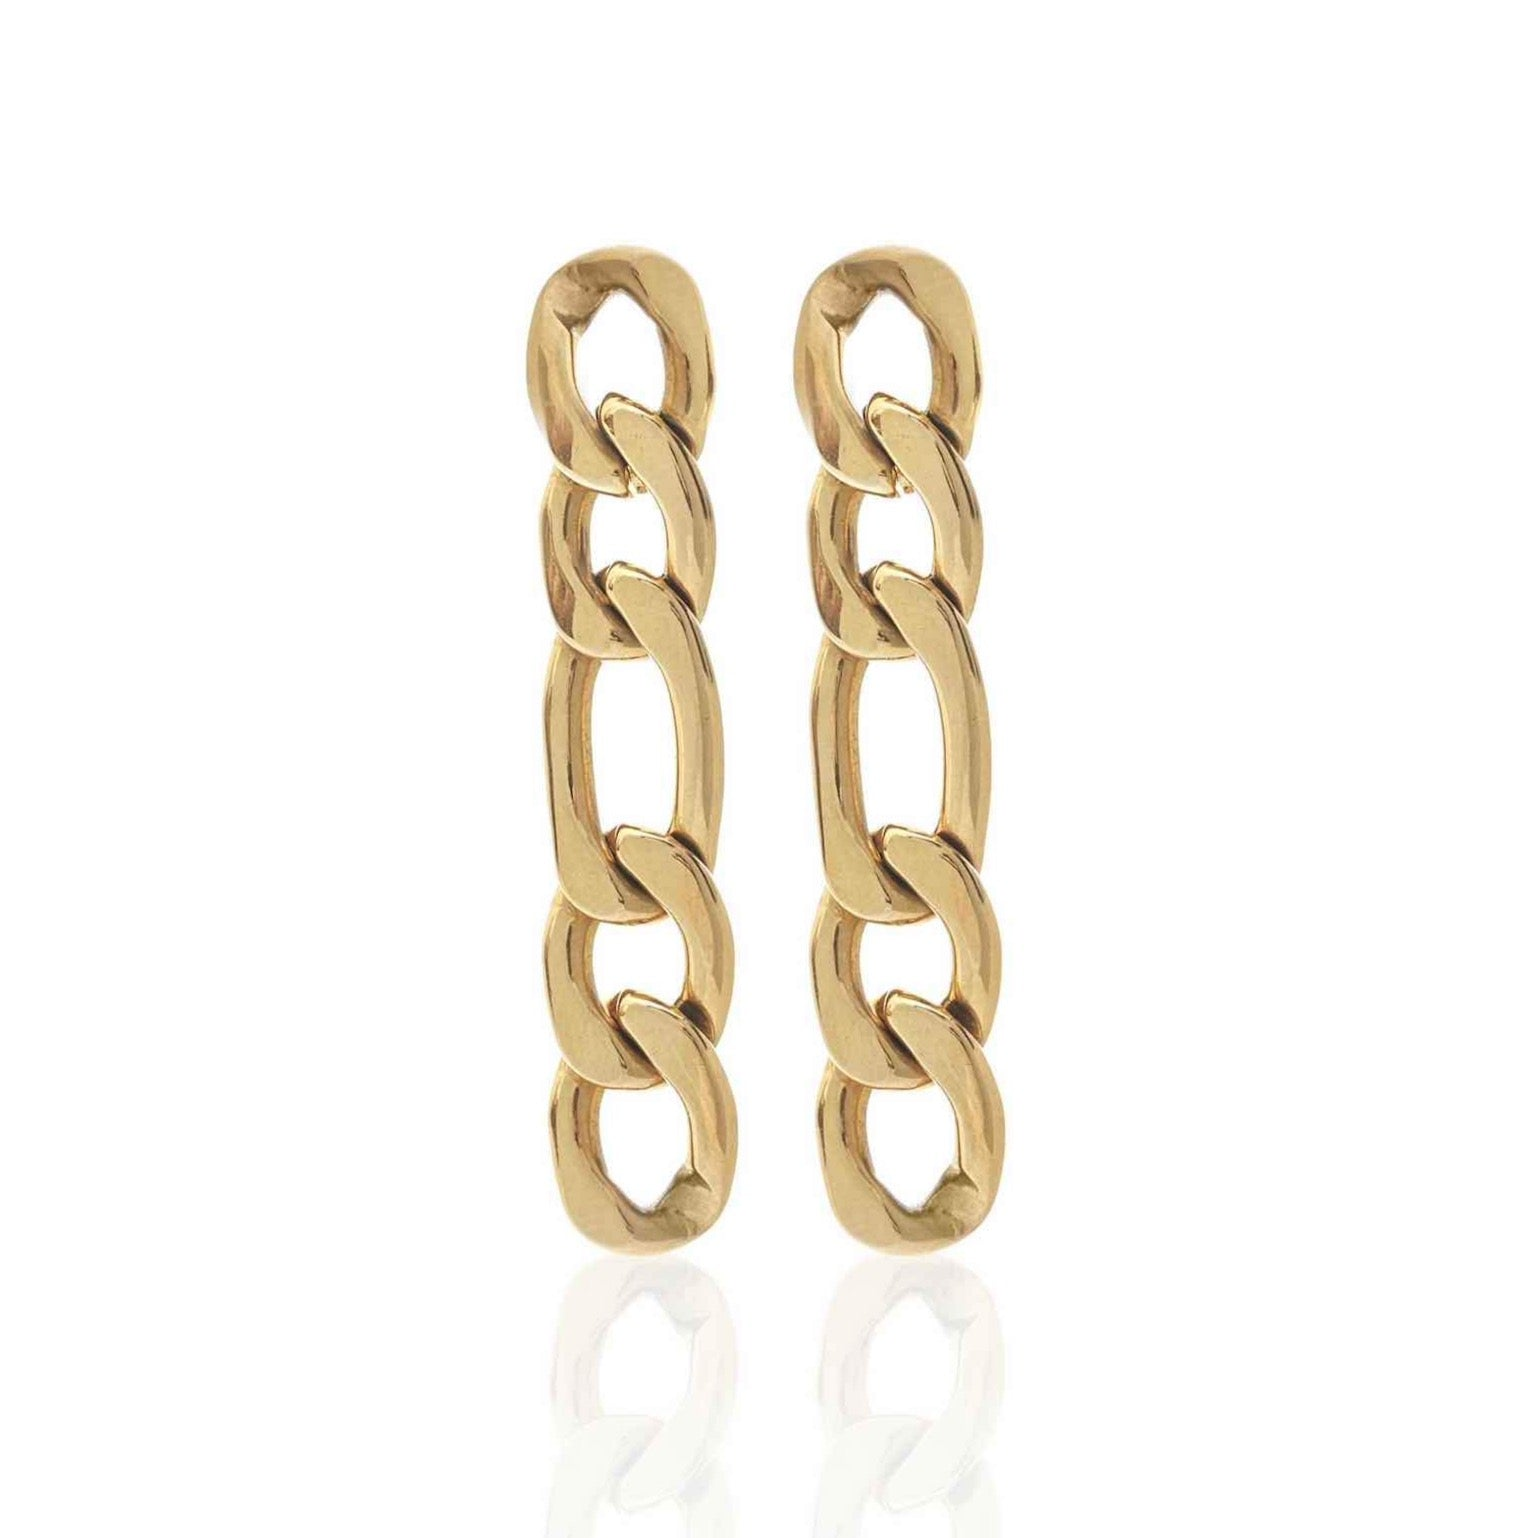 Silk & Steel Figaro earrings gold